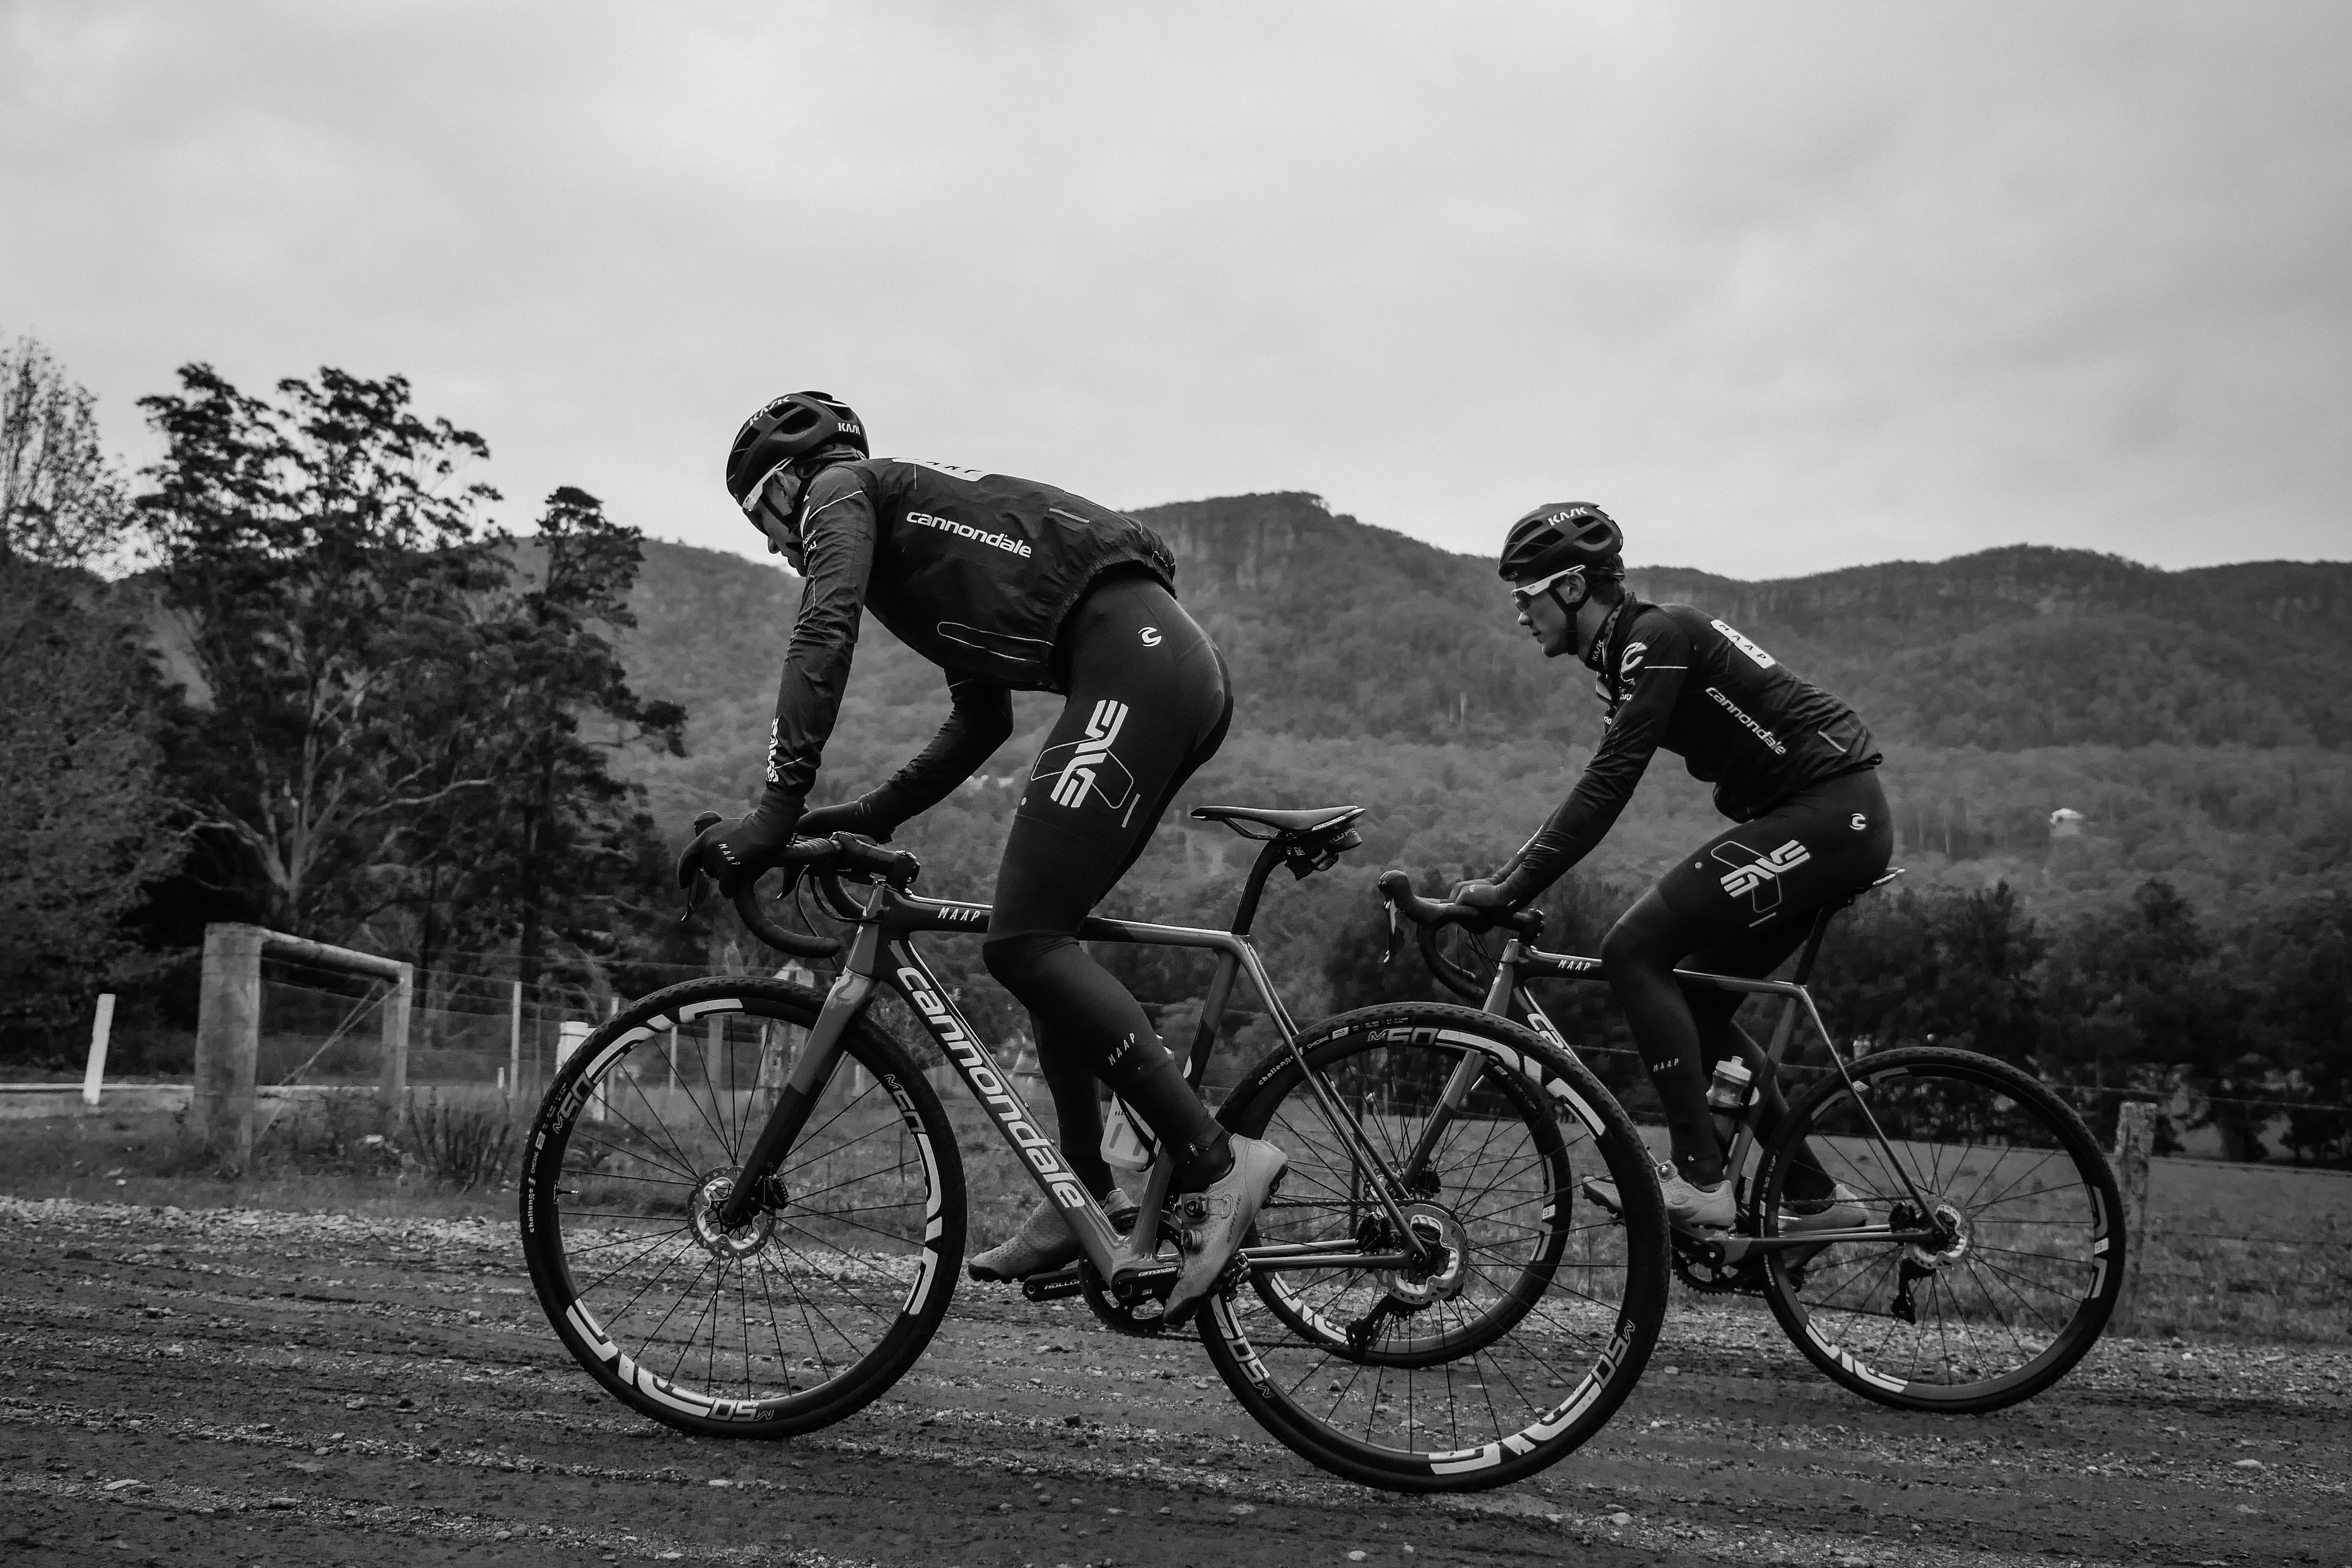 introducing  the maap enve cx team by MAAP 30653cec9